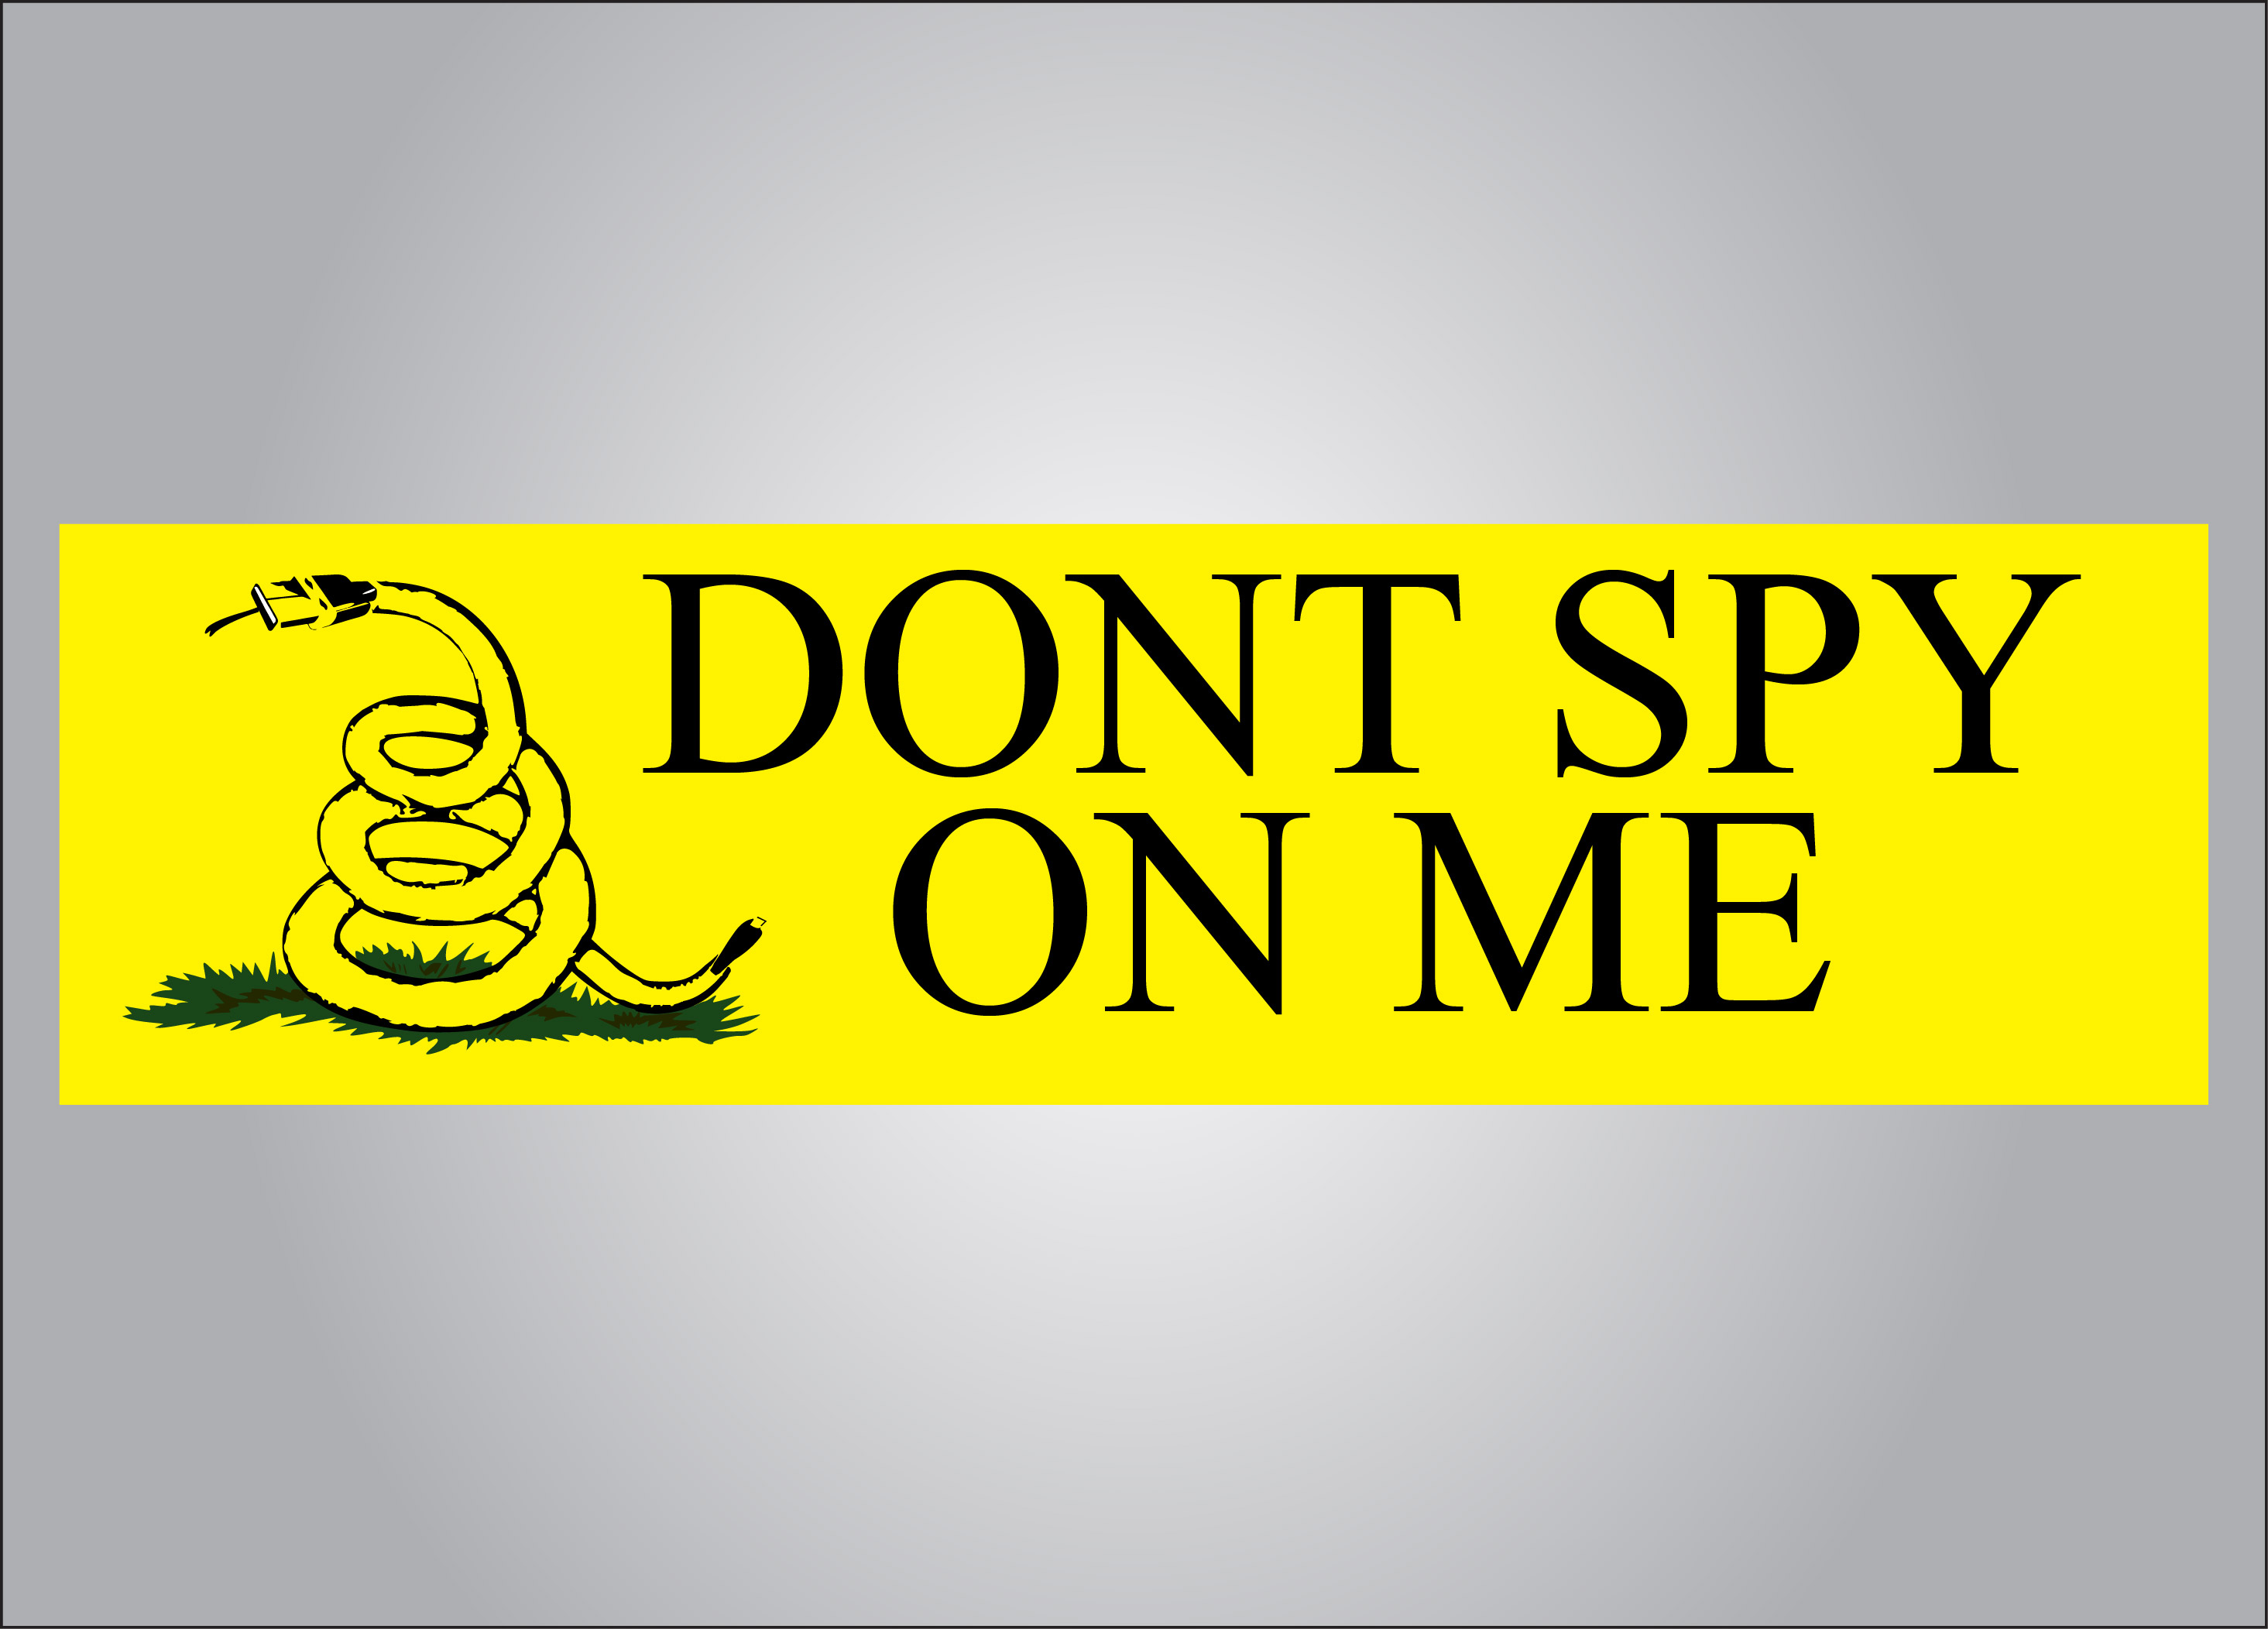 Don't spy on me sticker in the style of the Gadsden Flag.